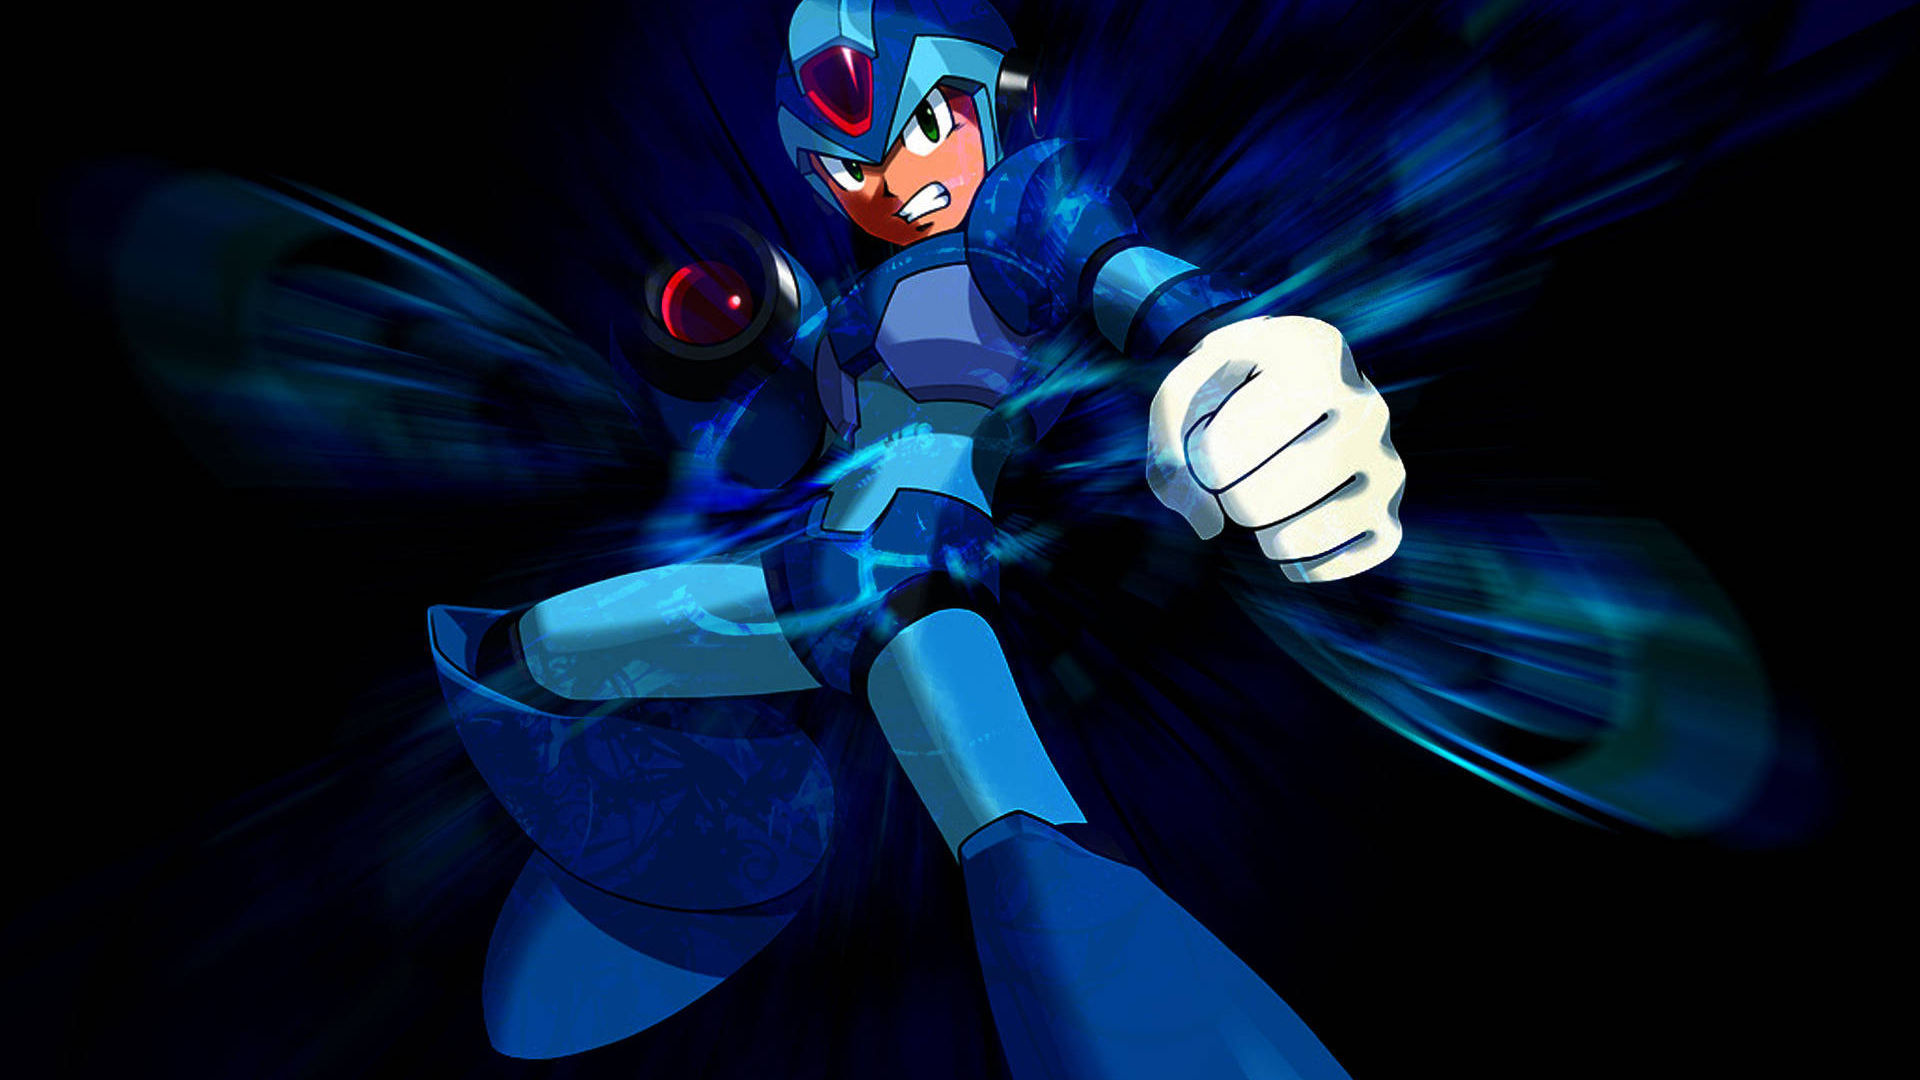 Free Download Mega Man 19201200 Wallpaper 893102 1920x1200 For